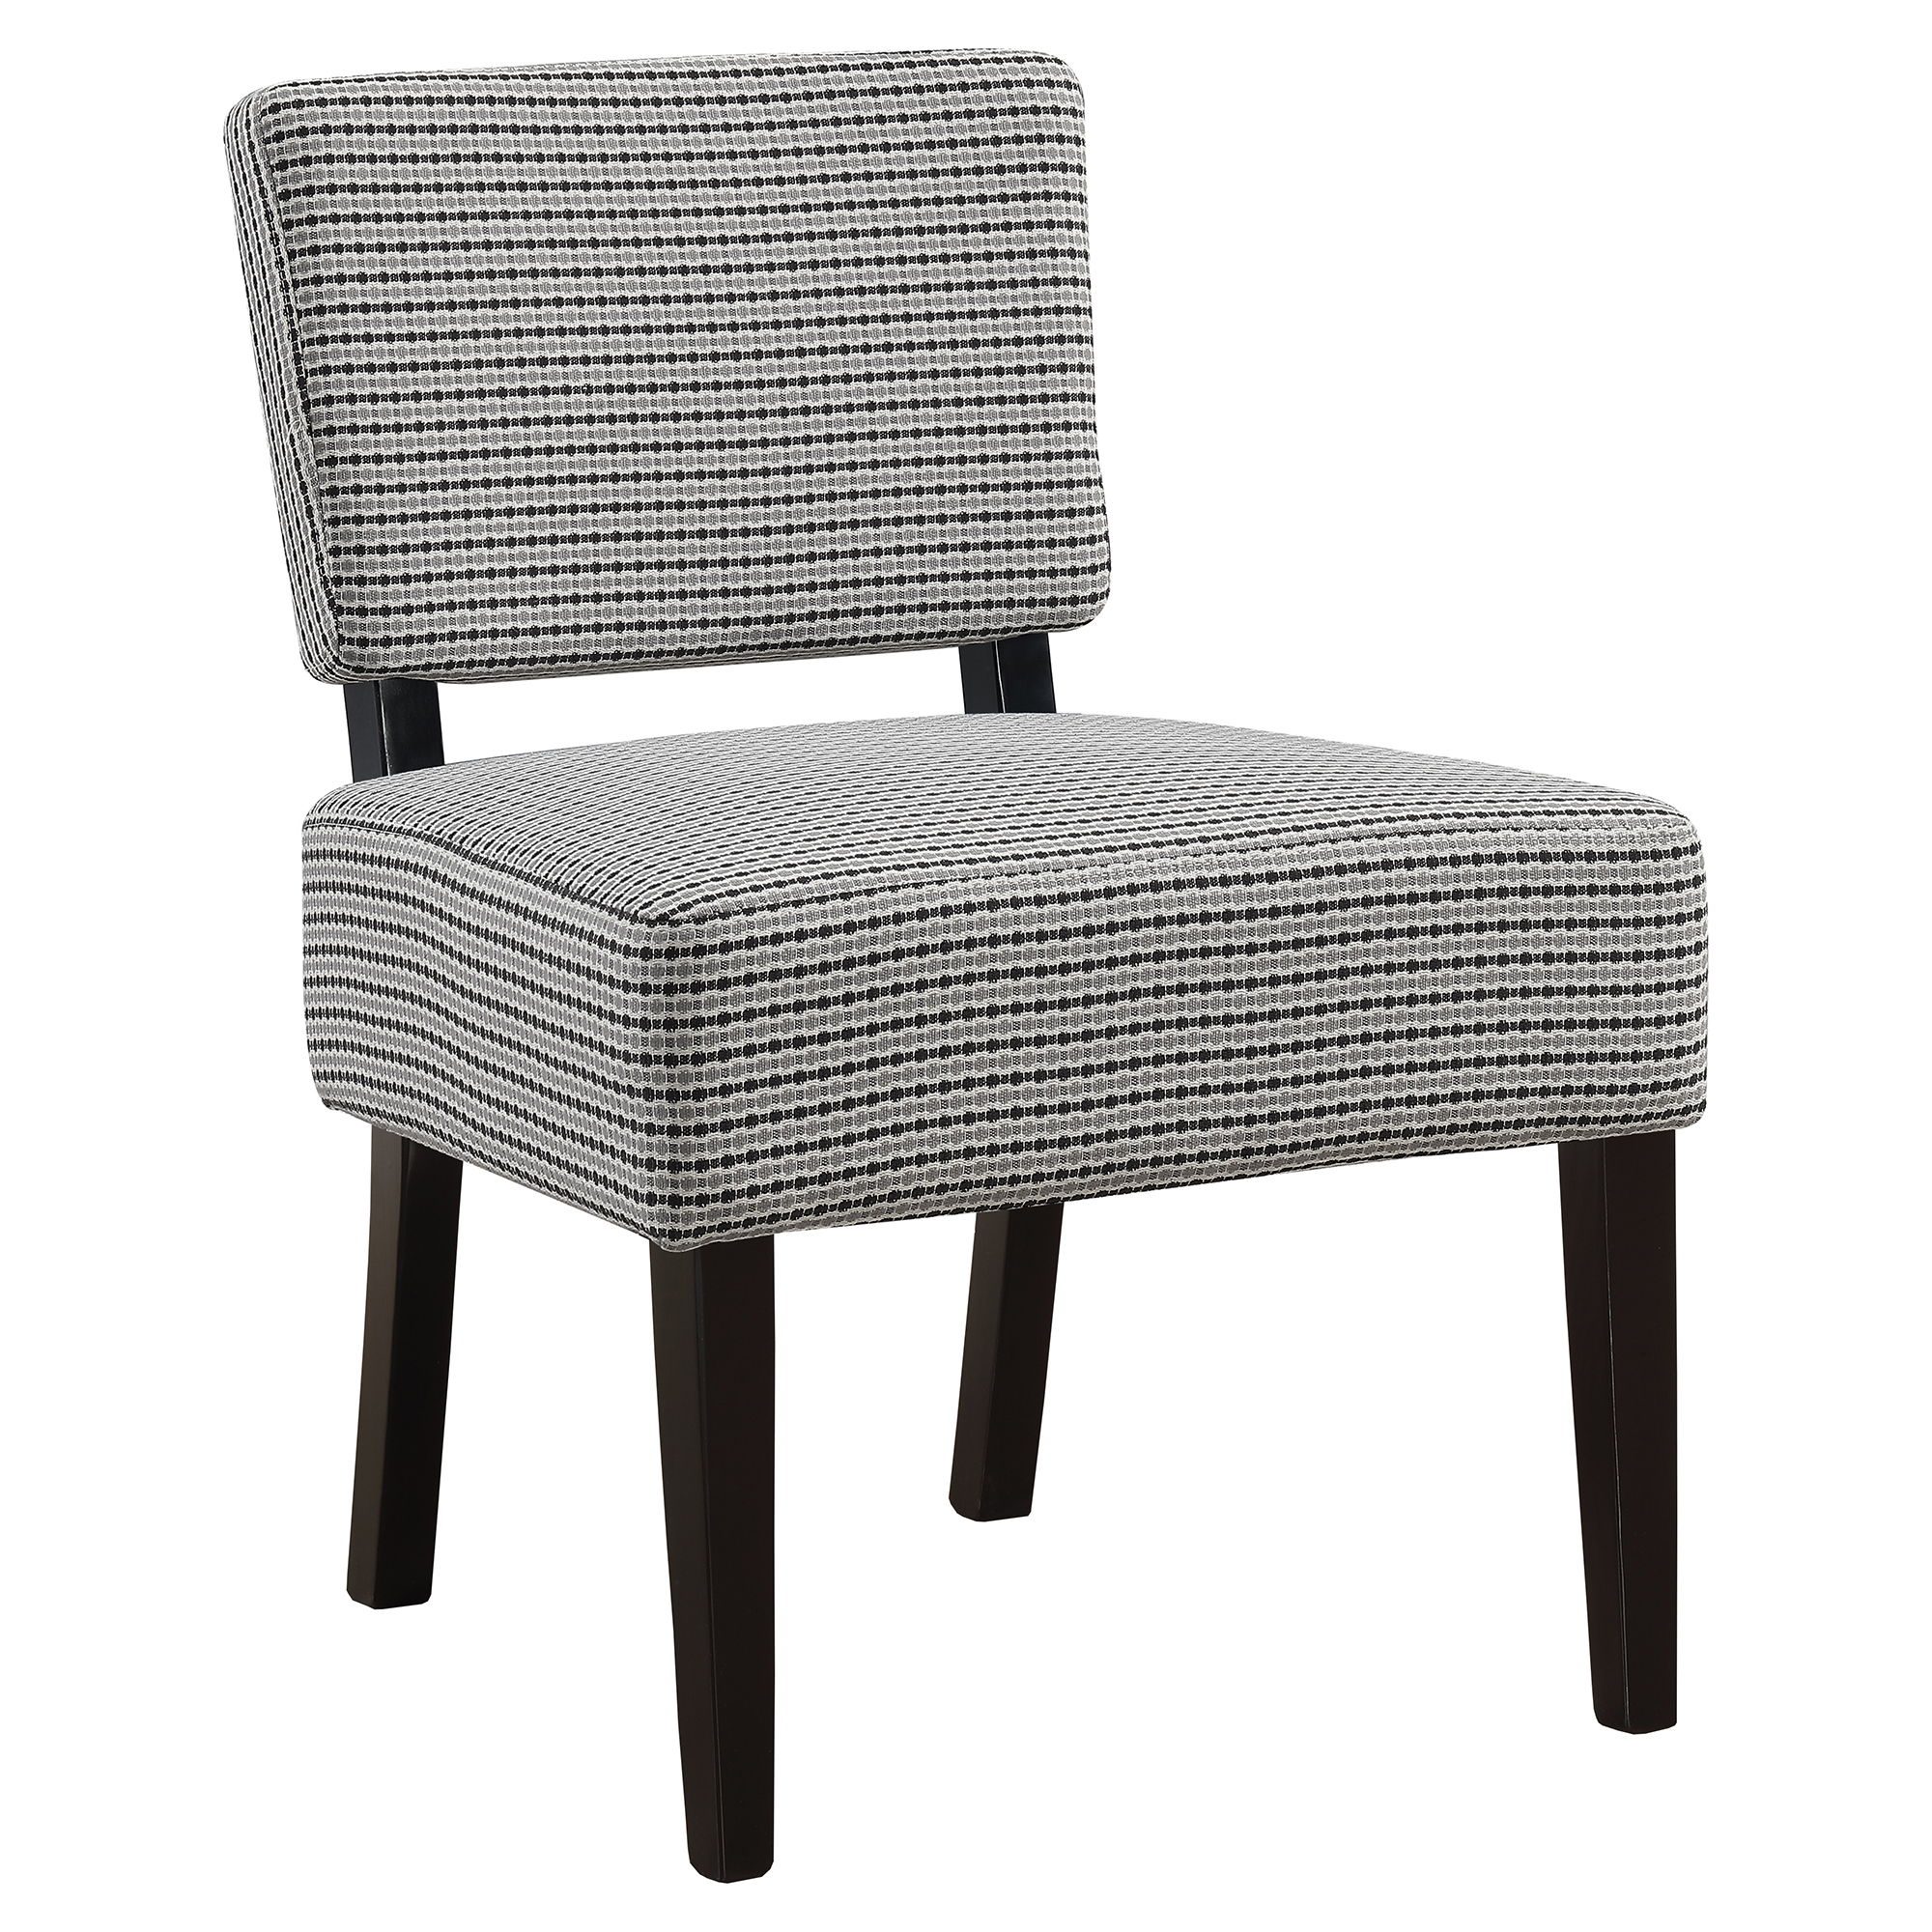 ACCENT CHAIR - LIGHT GREY / BLACK ABSTRACT DOT FABRIC